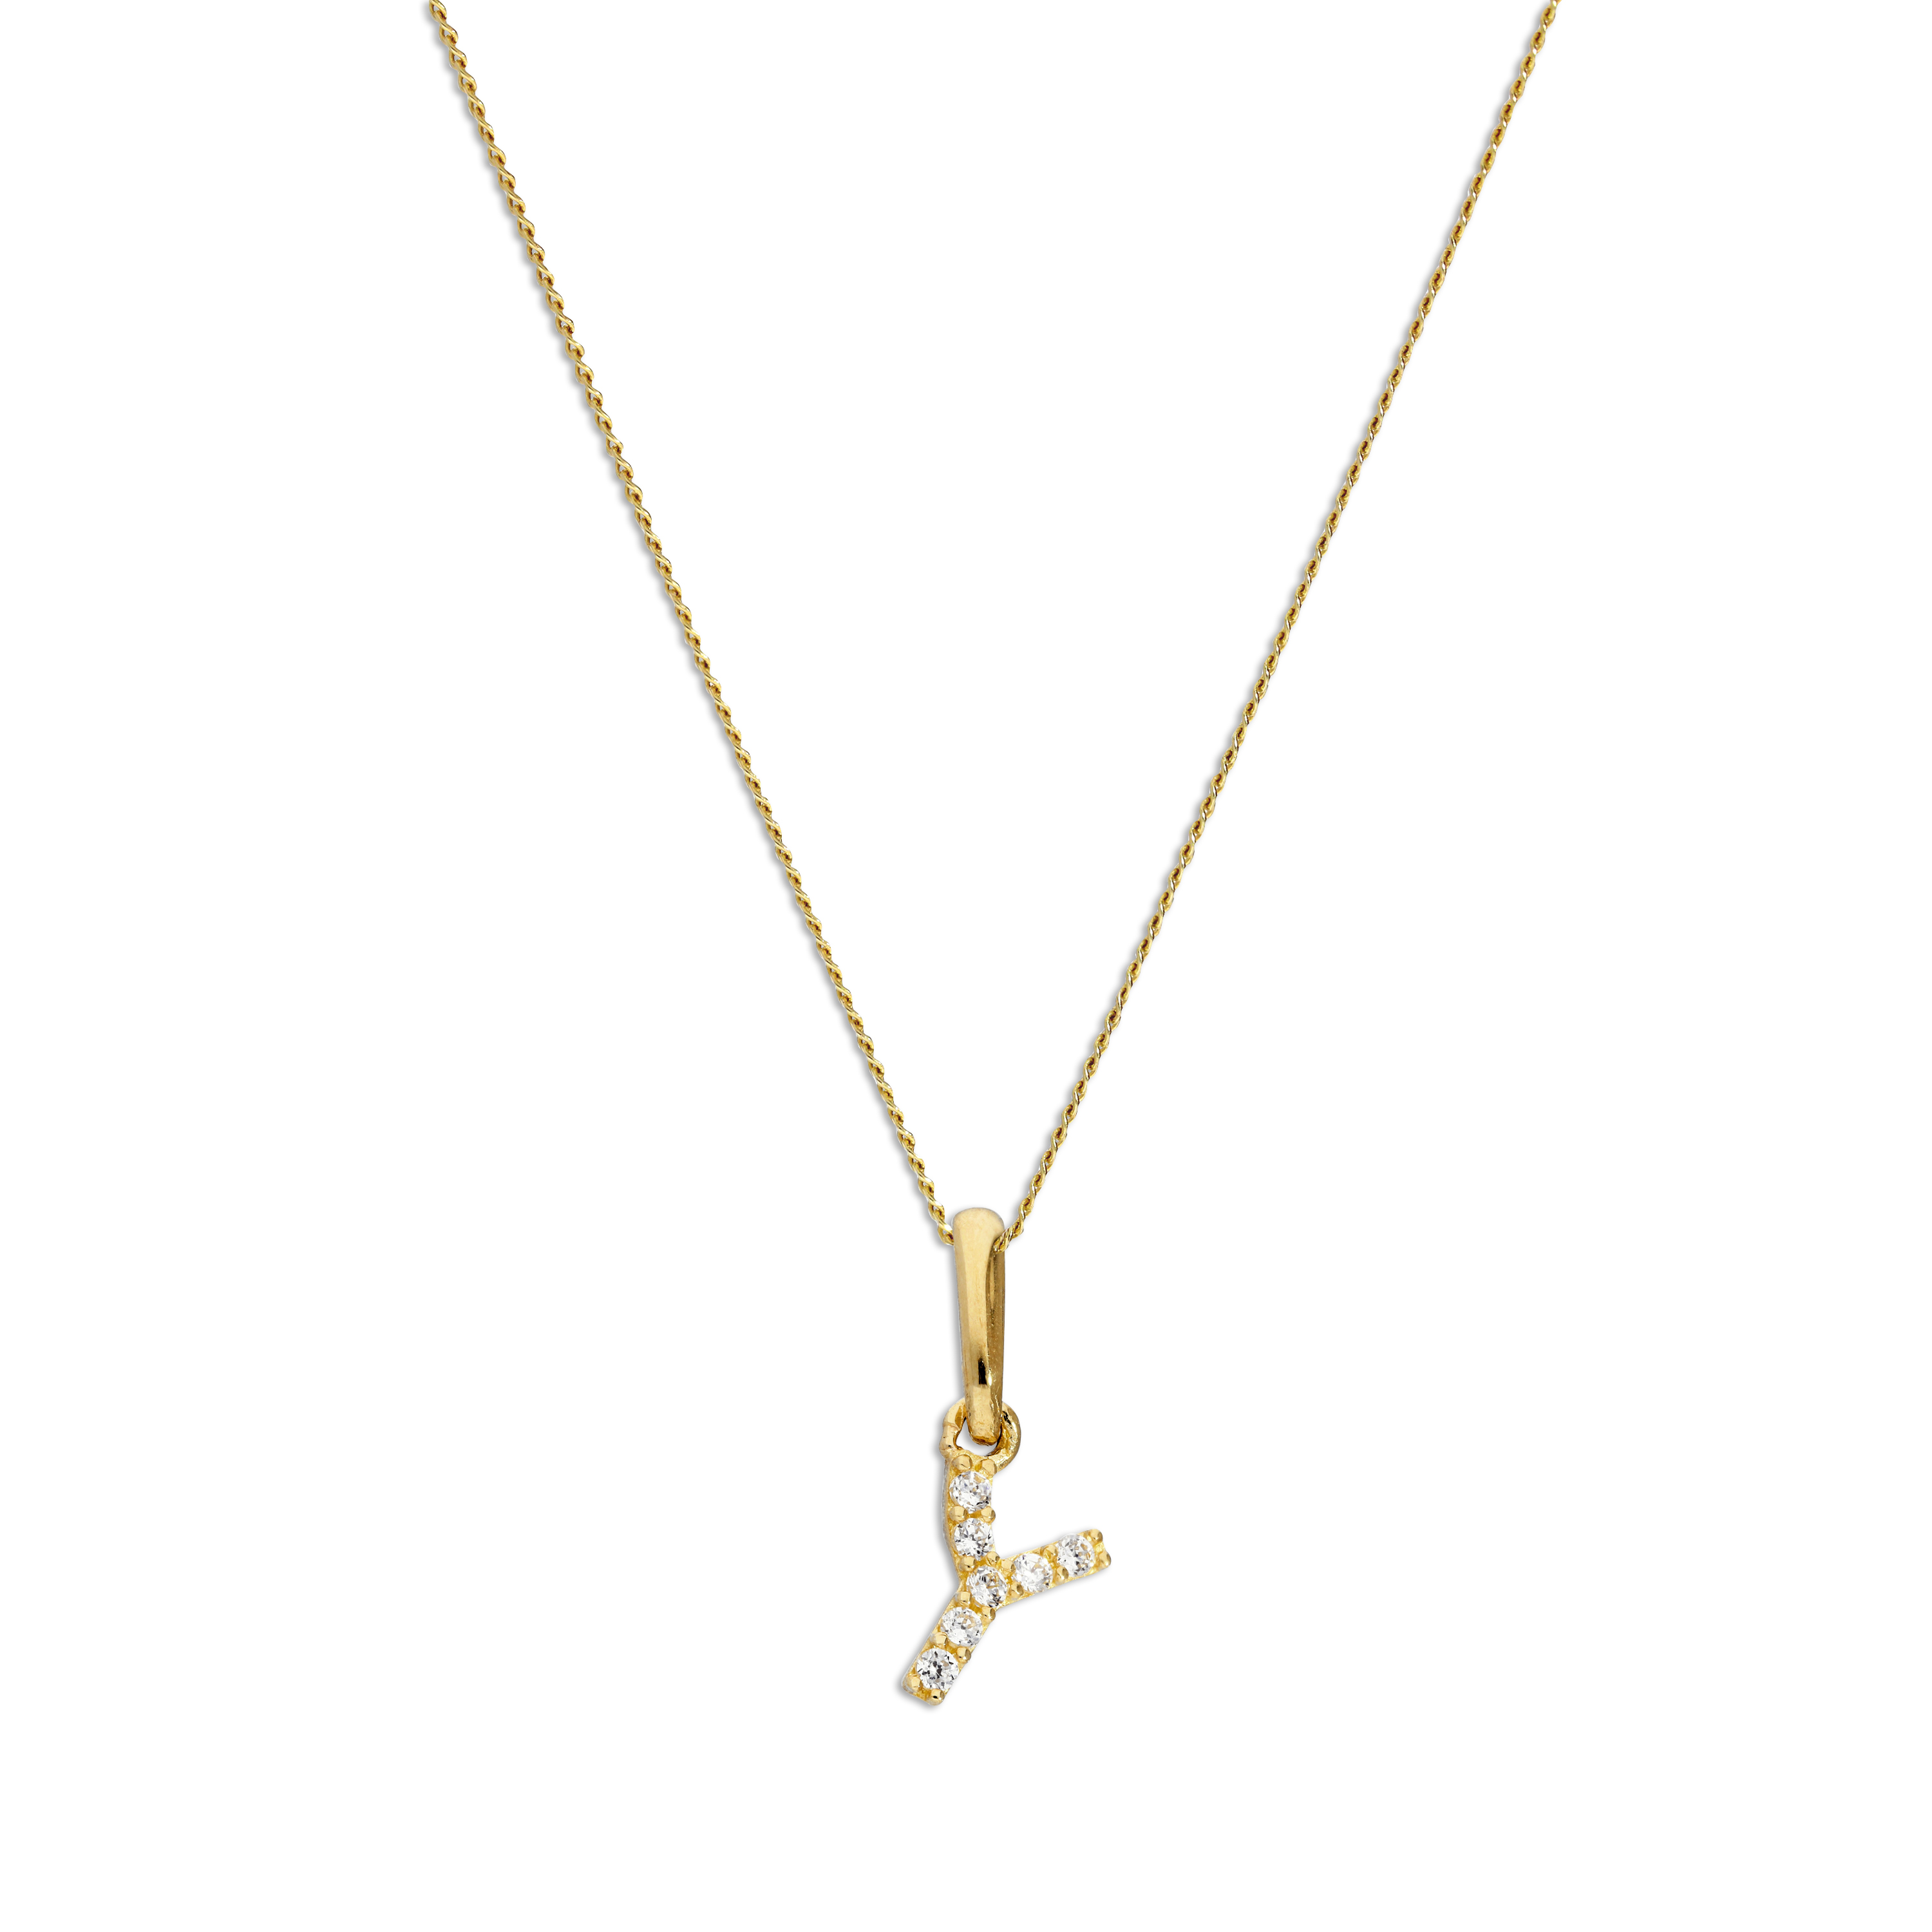 An image of 9ct Gold Clear CZ Crystal Script Alphabet Letter Y Necklace 16 20 Inches